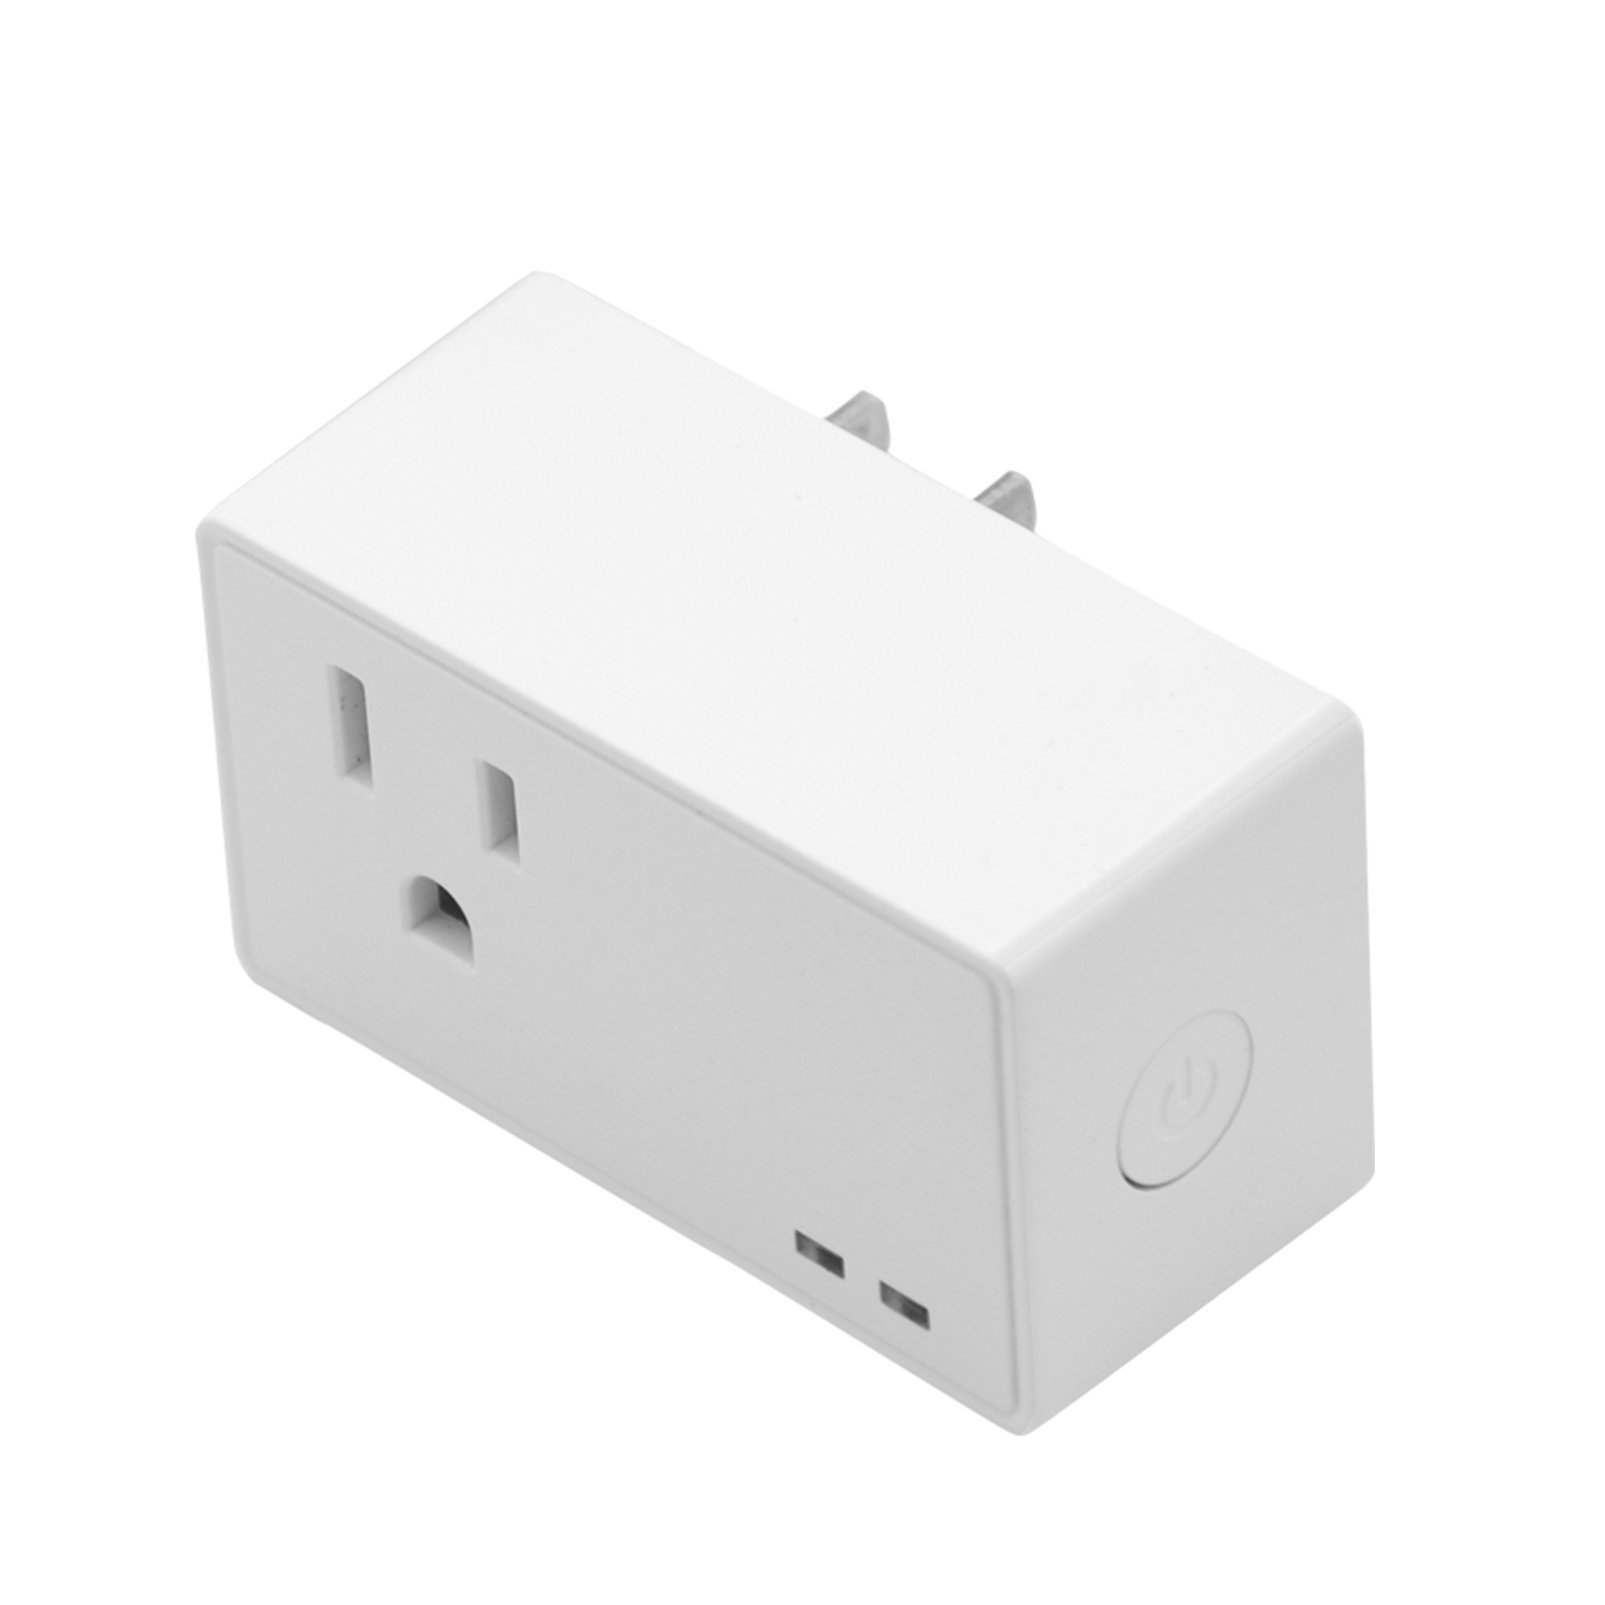 AVACOM WiFi Smart Plug, Compatible with Amazon Alexa Echo/Dot | Google Home | Works with Nest and IFTTT, Remote Voice and App Control from Anywhere, Wifi Remote Outlet, No Hub Required by Avacom (Image #2)